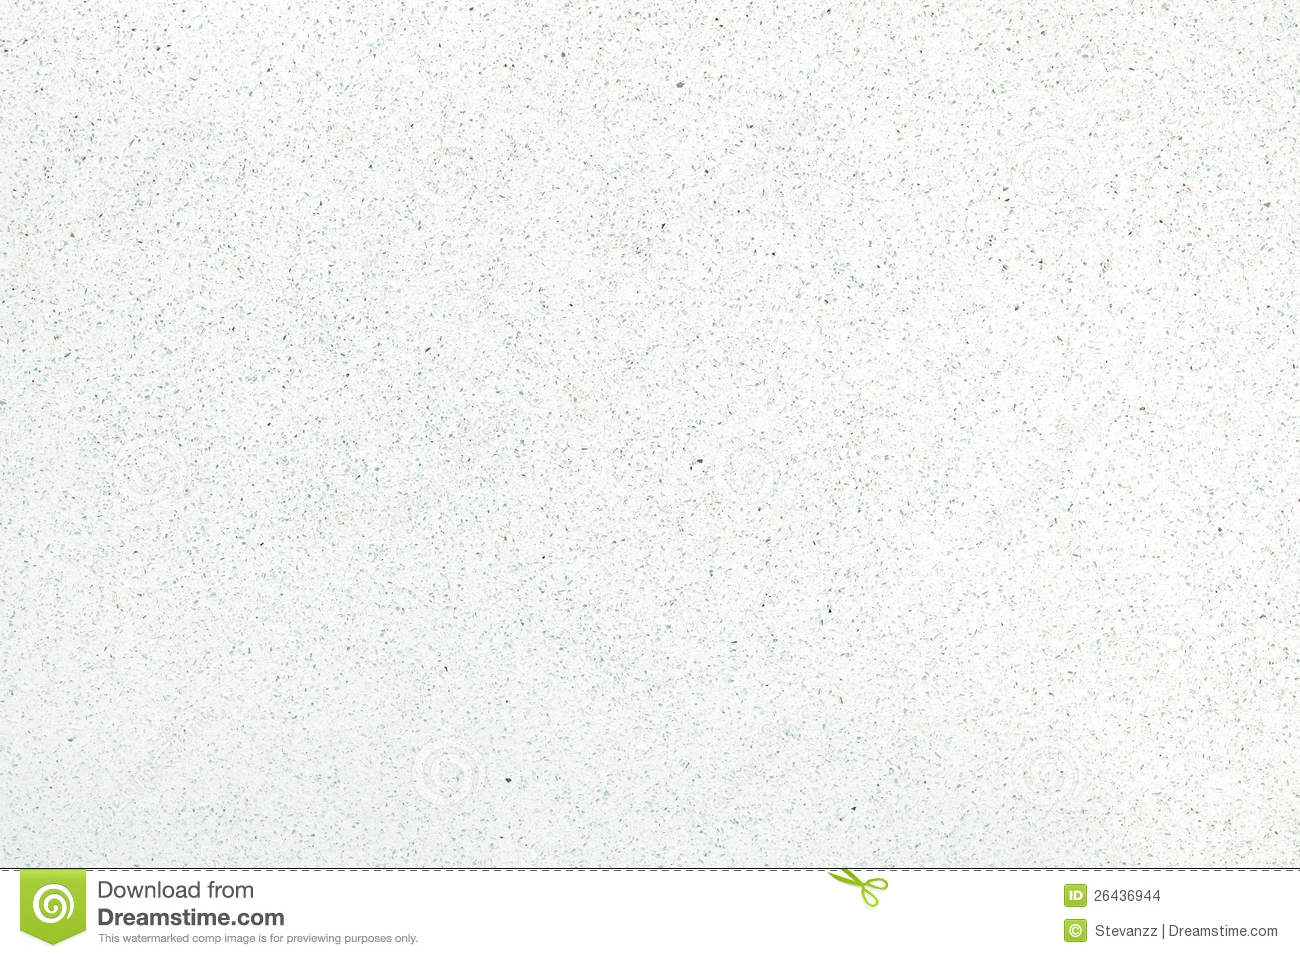 White Quartz furthermore Wilsonart Quartz Gallery together with Opal White Marble Slab Wholesale Countertop besides Micro Diamond additionally Msi Quartz Gallery. on quartz bathroom countertops